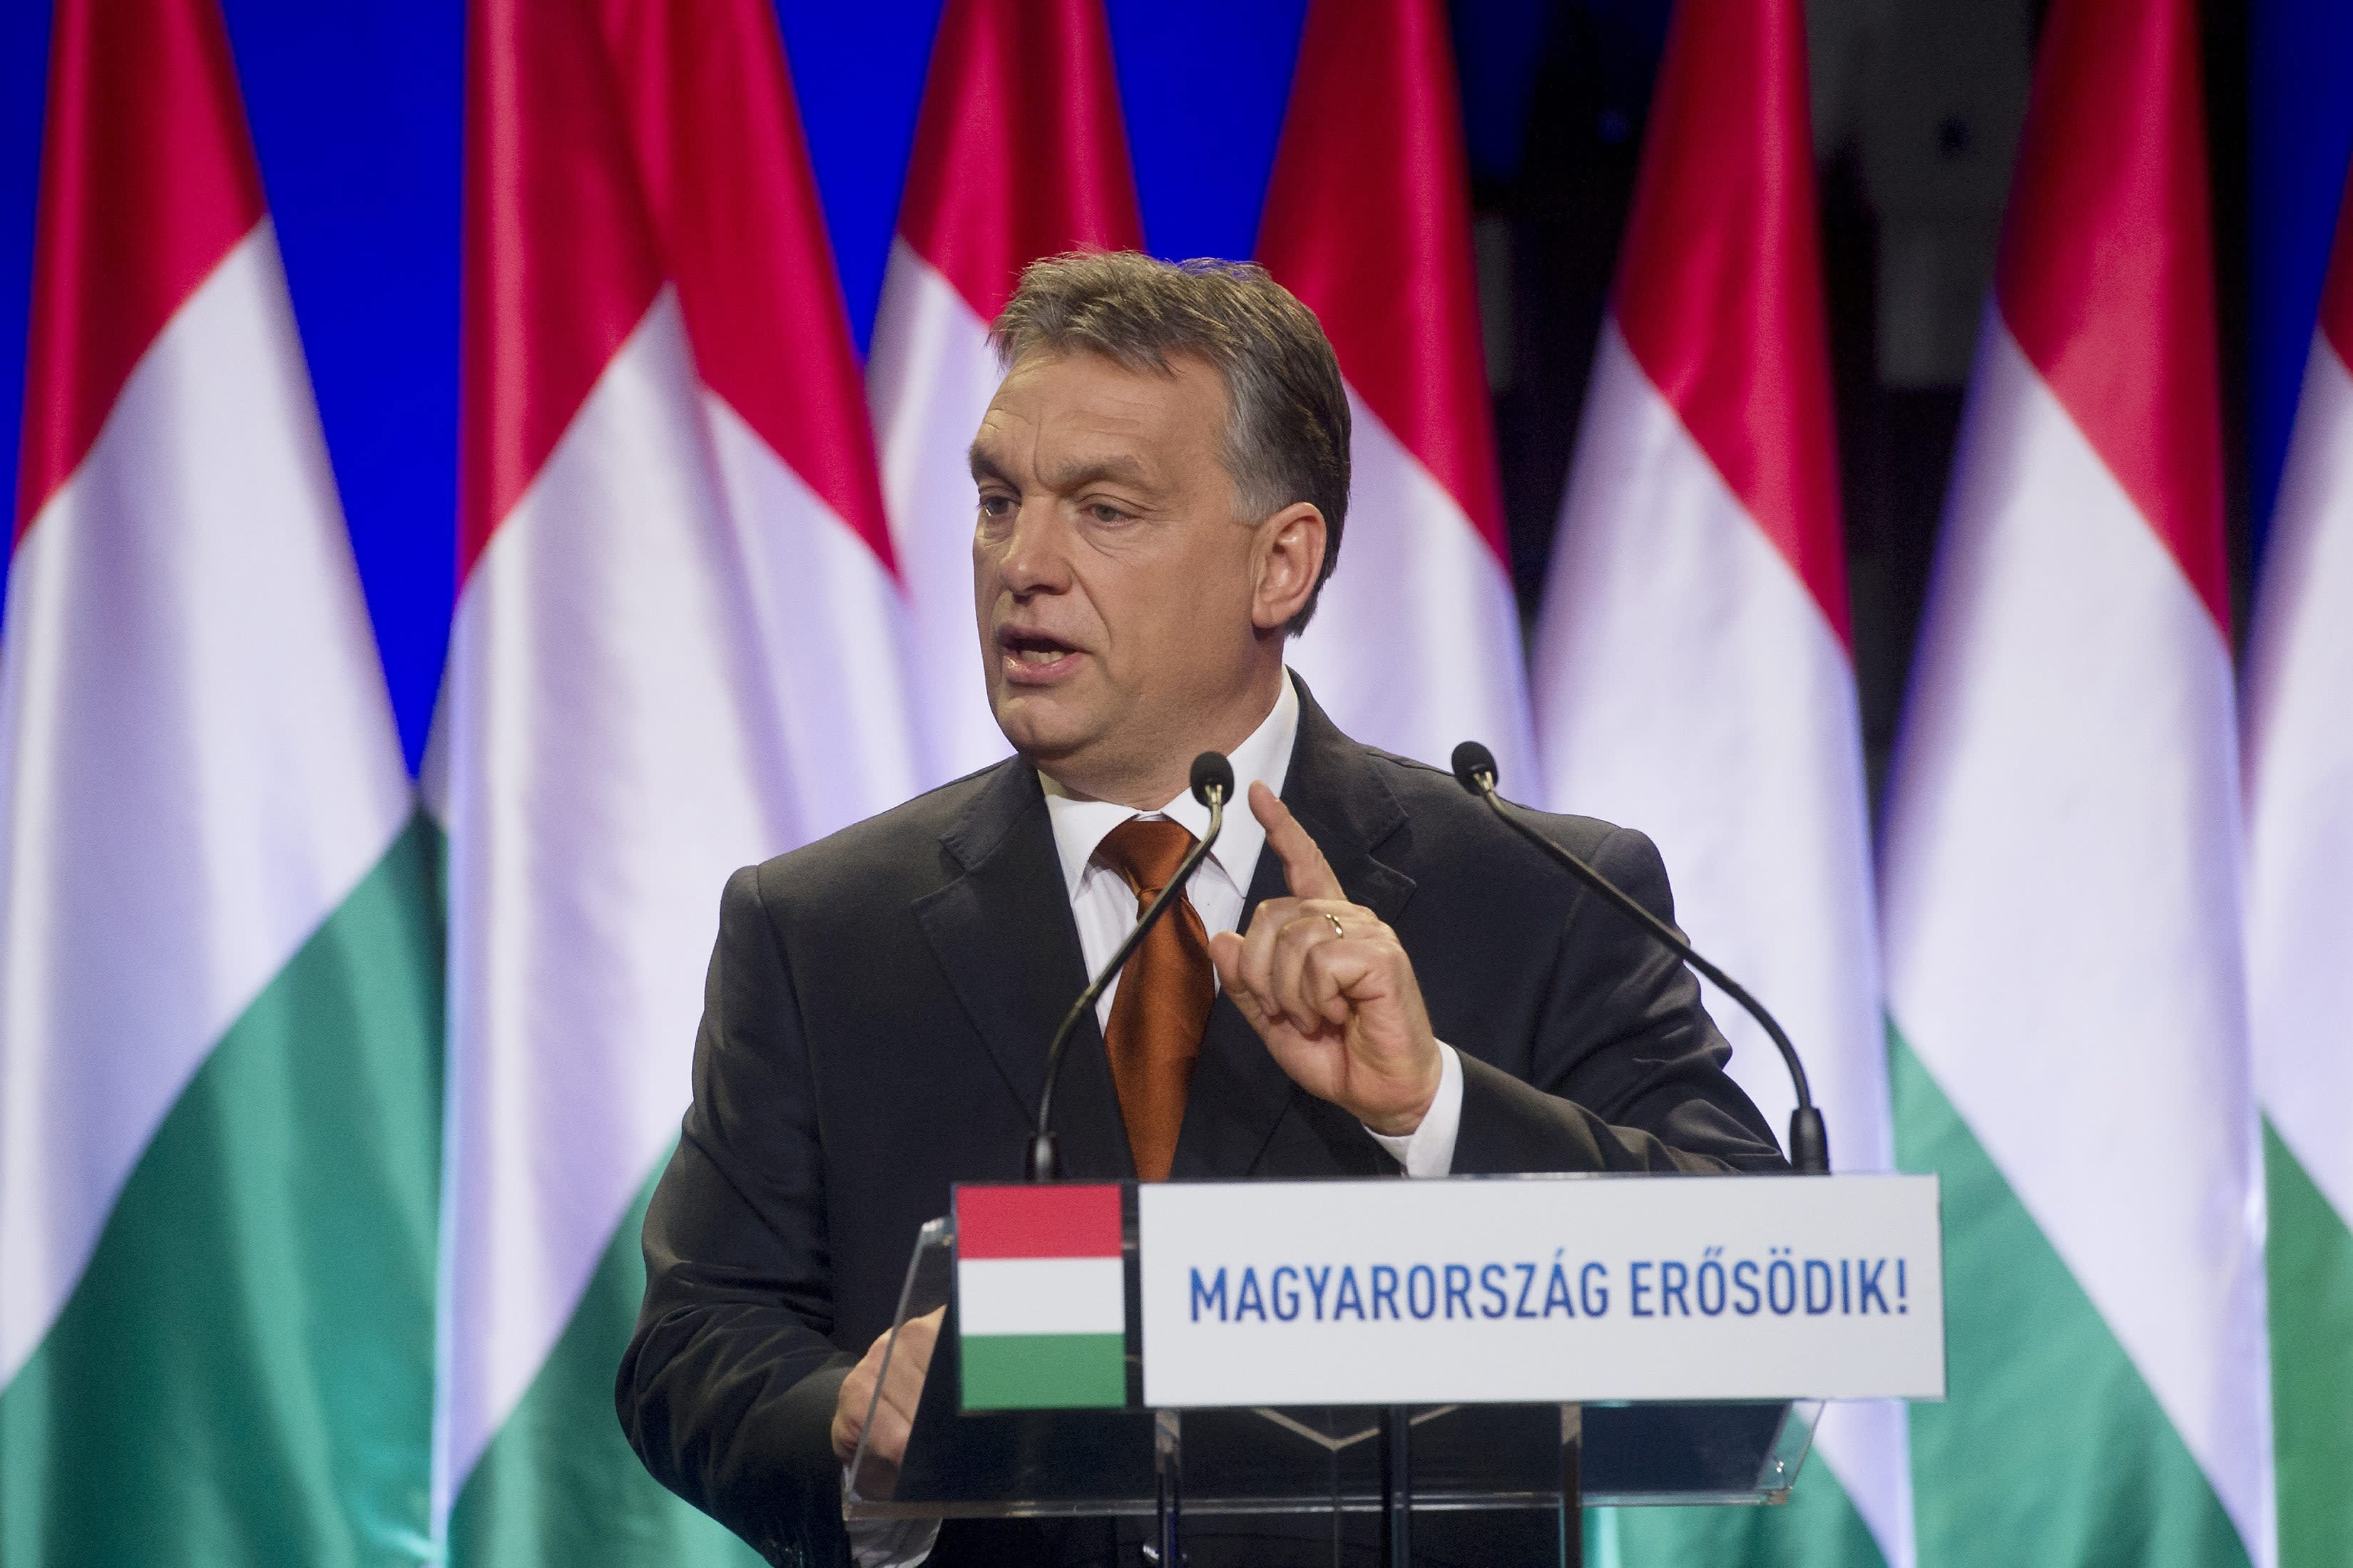 Hungary's premier rejects immigration, multicultural society